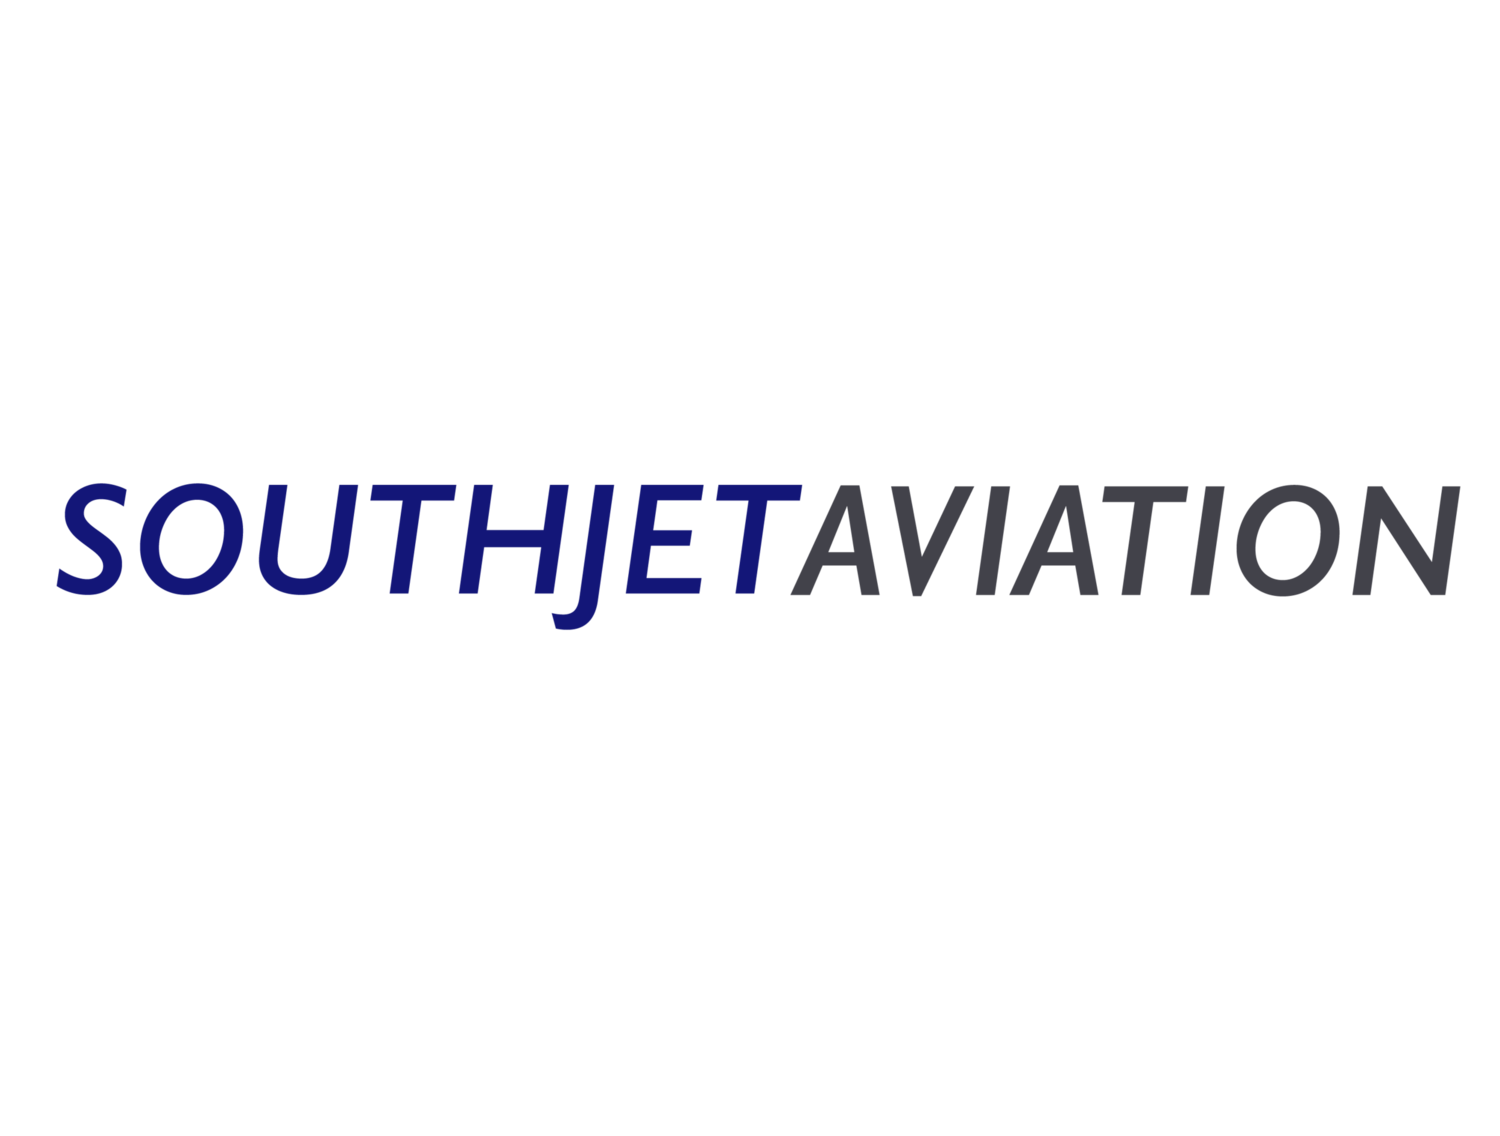 SouthJet Aviation